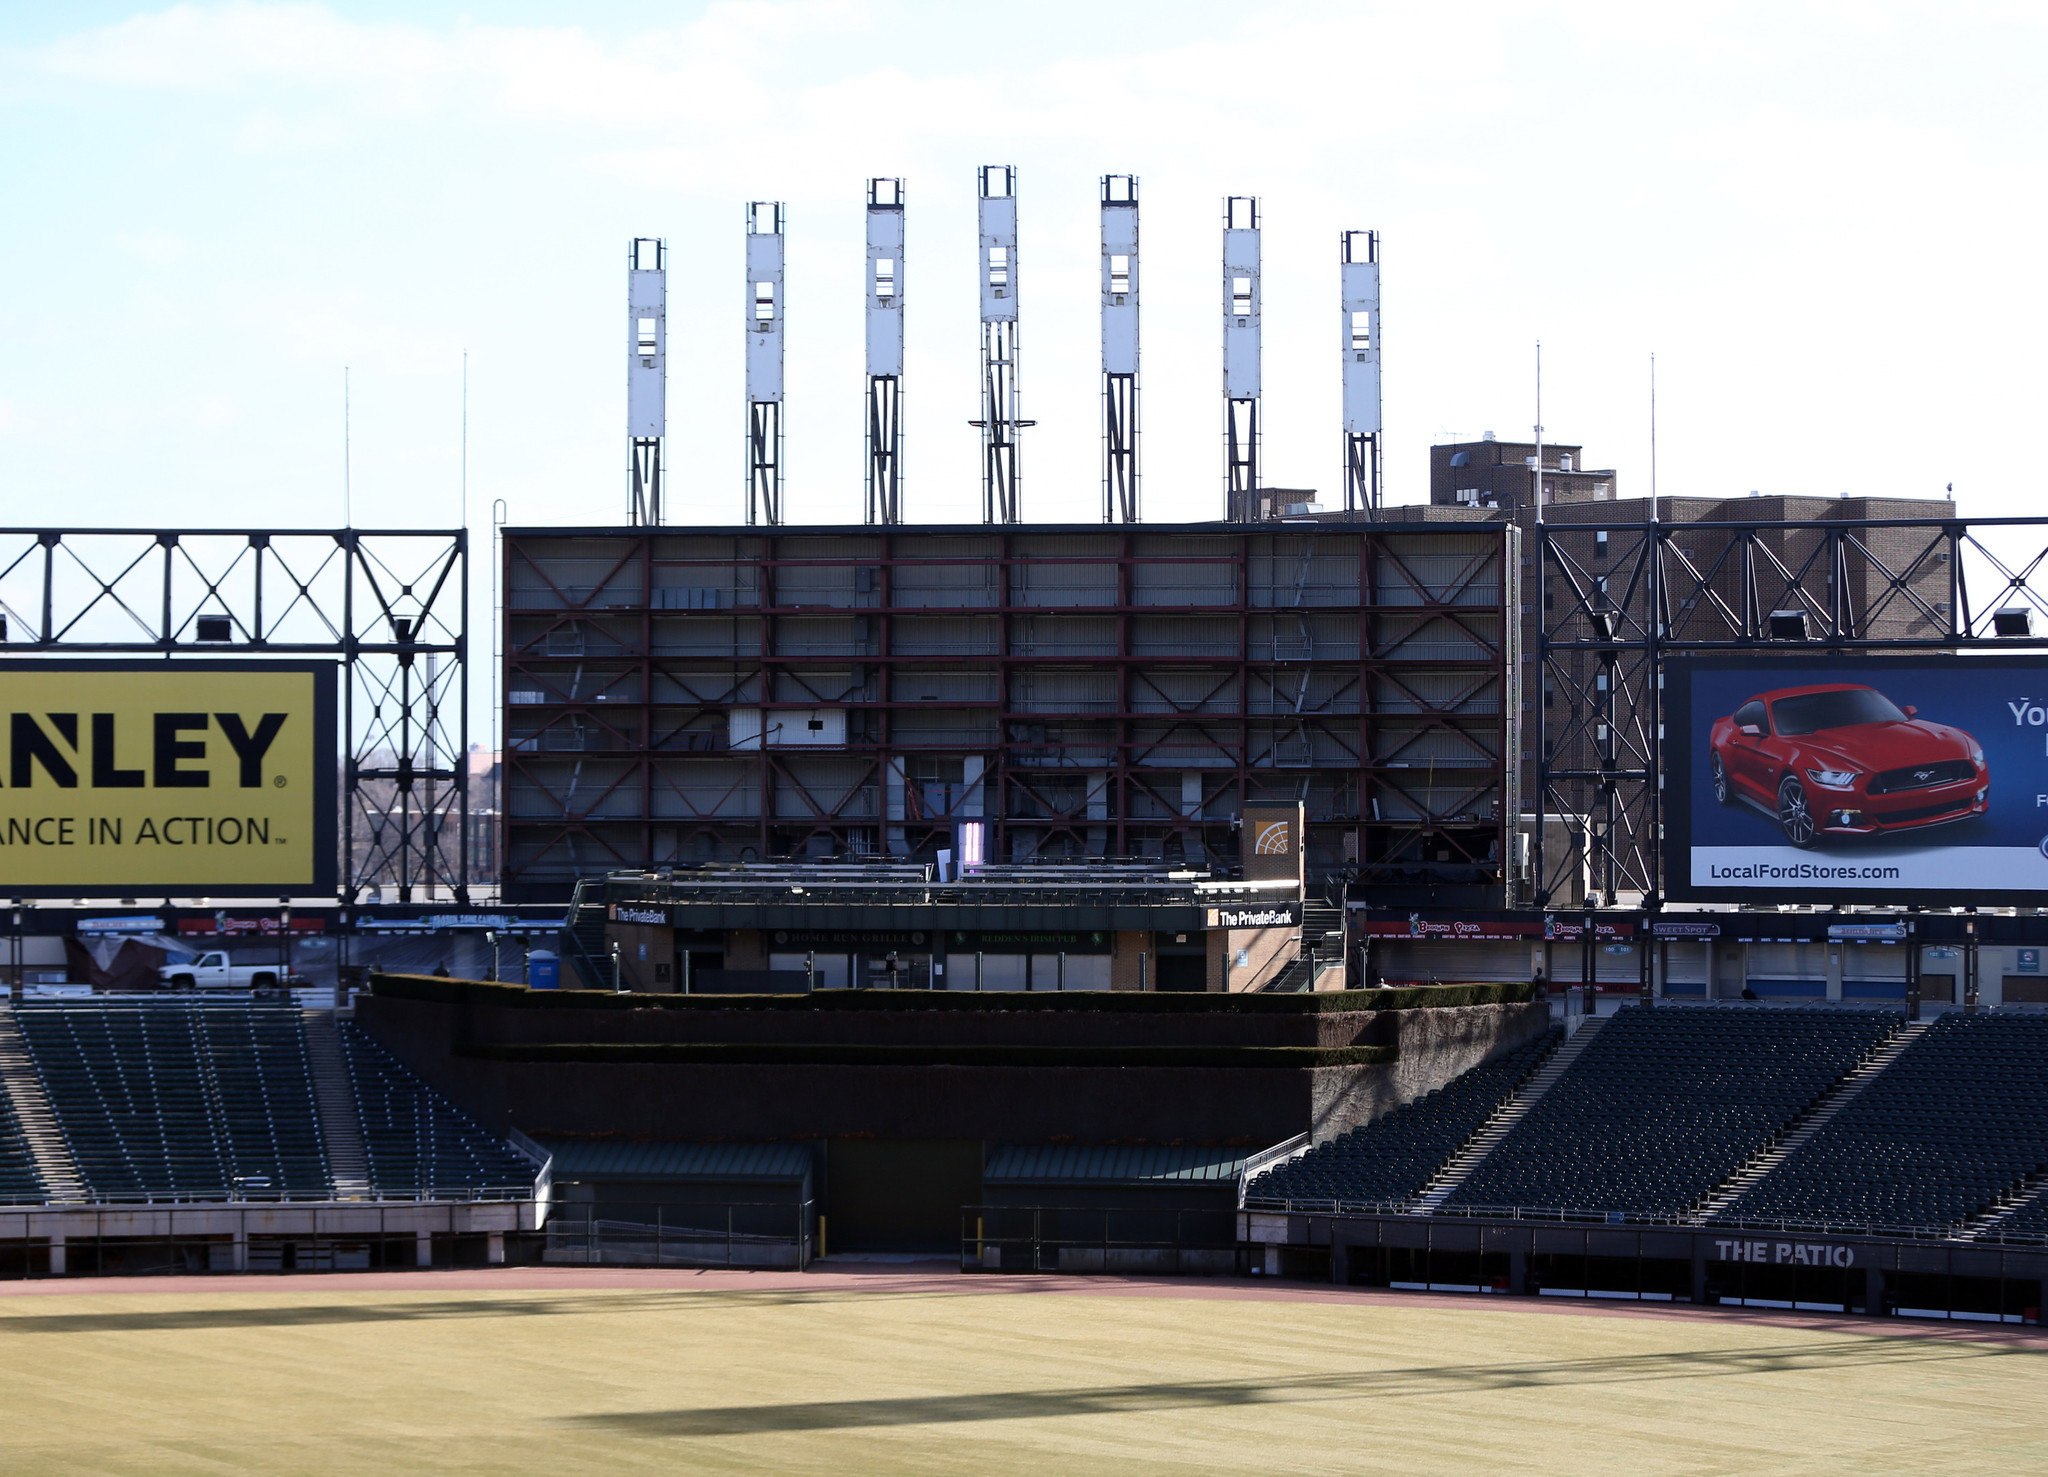 White Sox believe scoreboard project 'will change game experience'